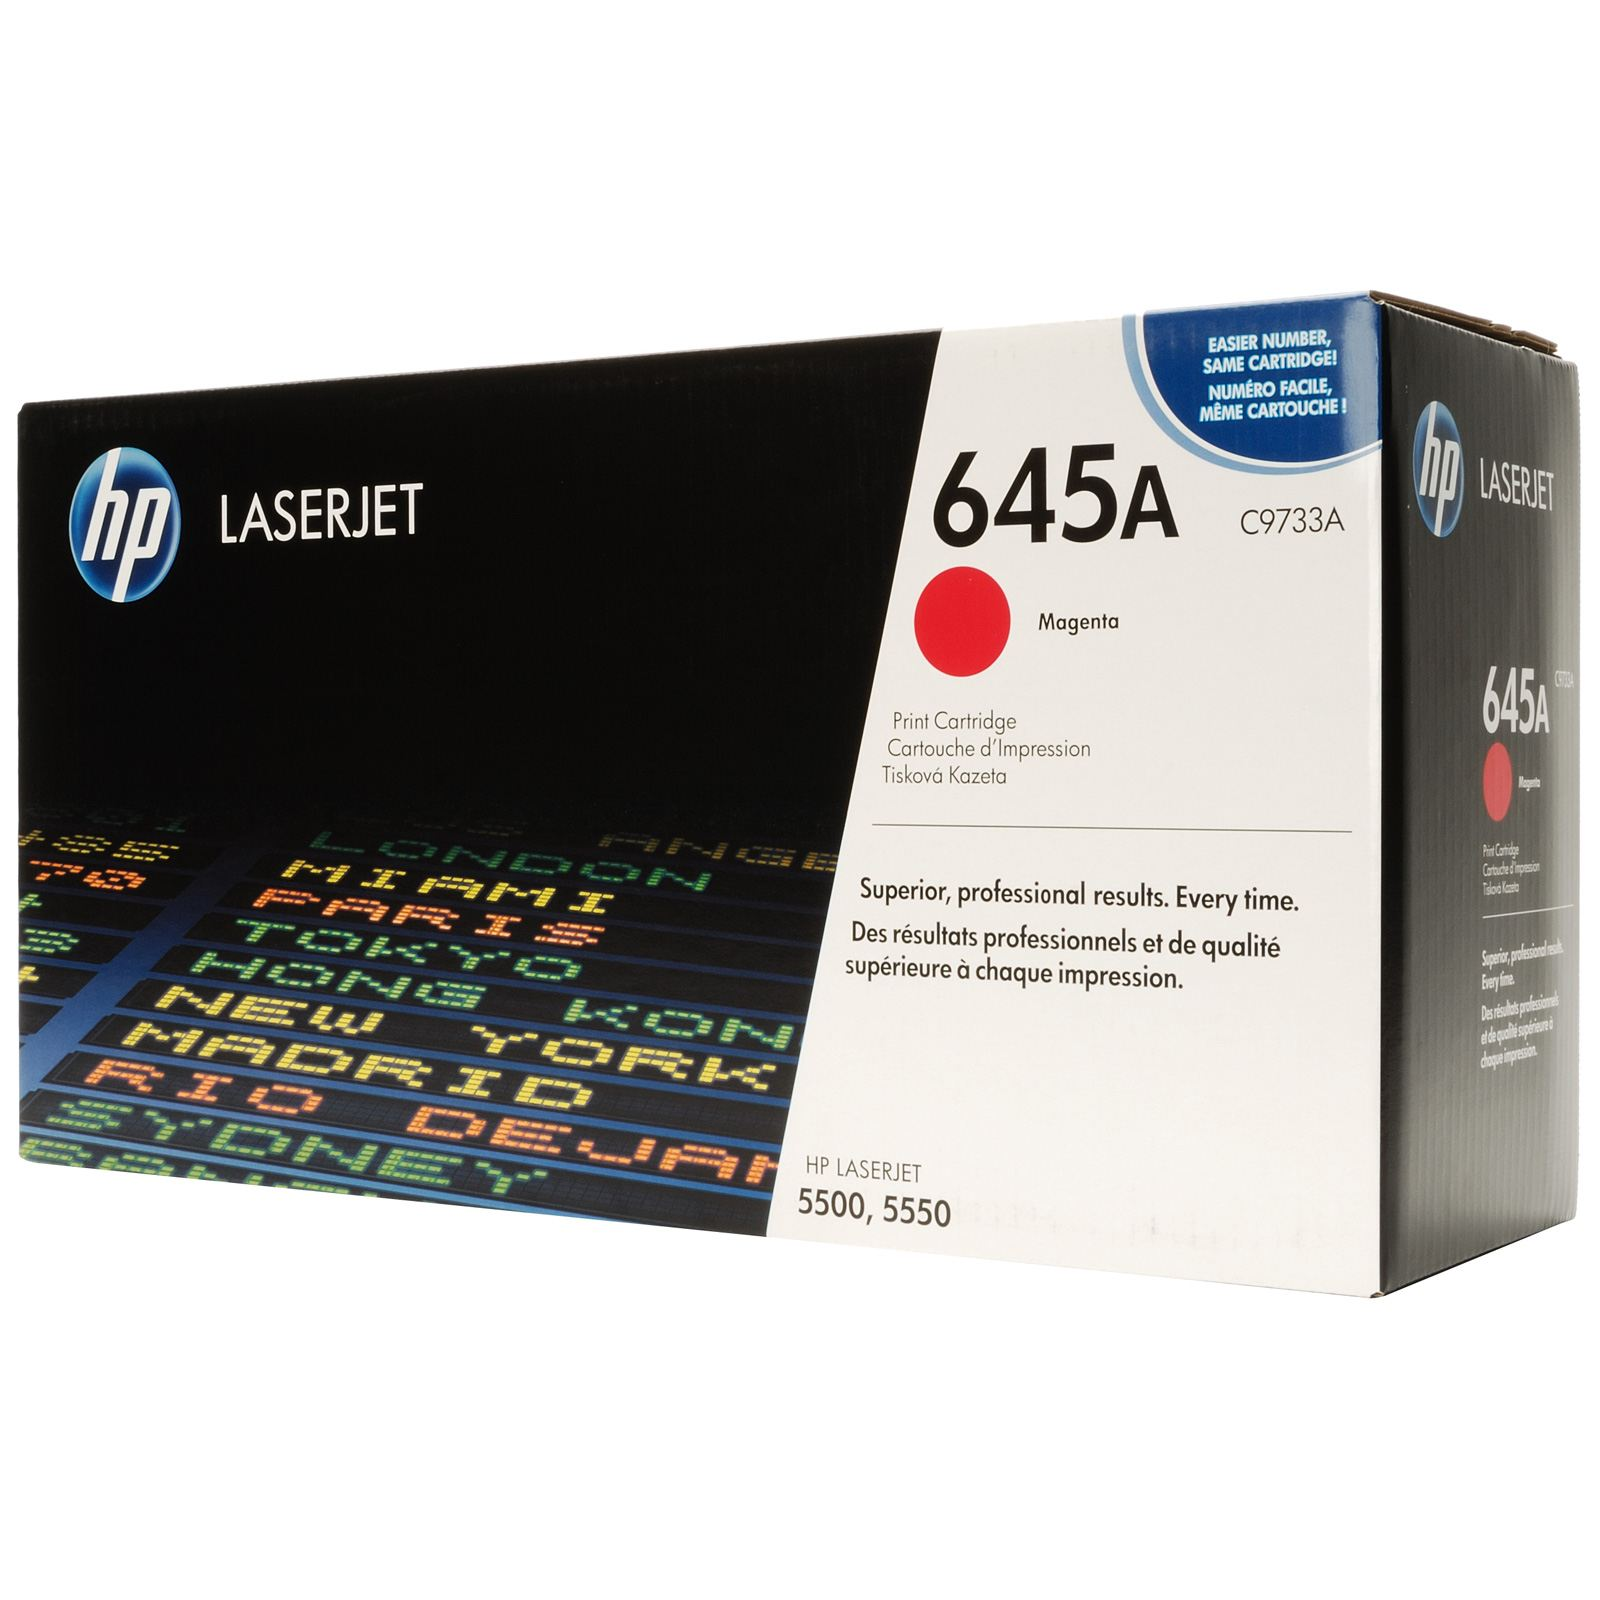 HP C9733A Magenta (645A) Toner Cartridge